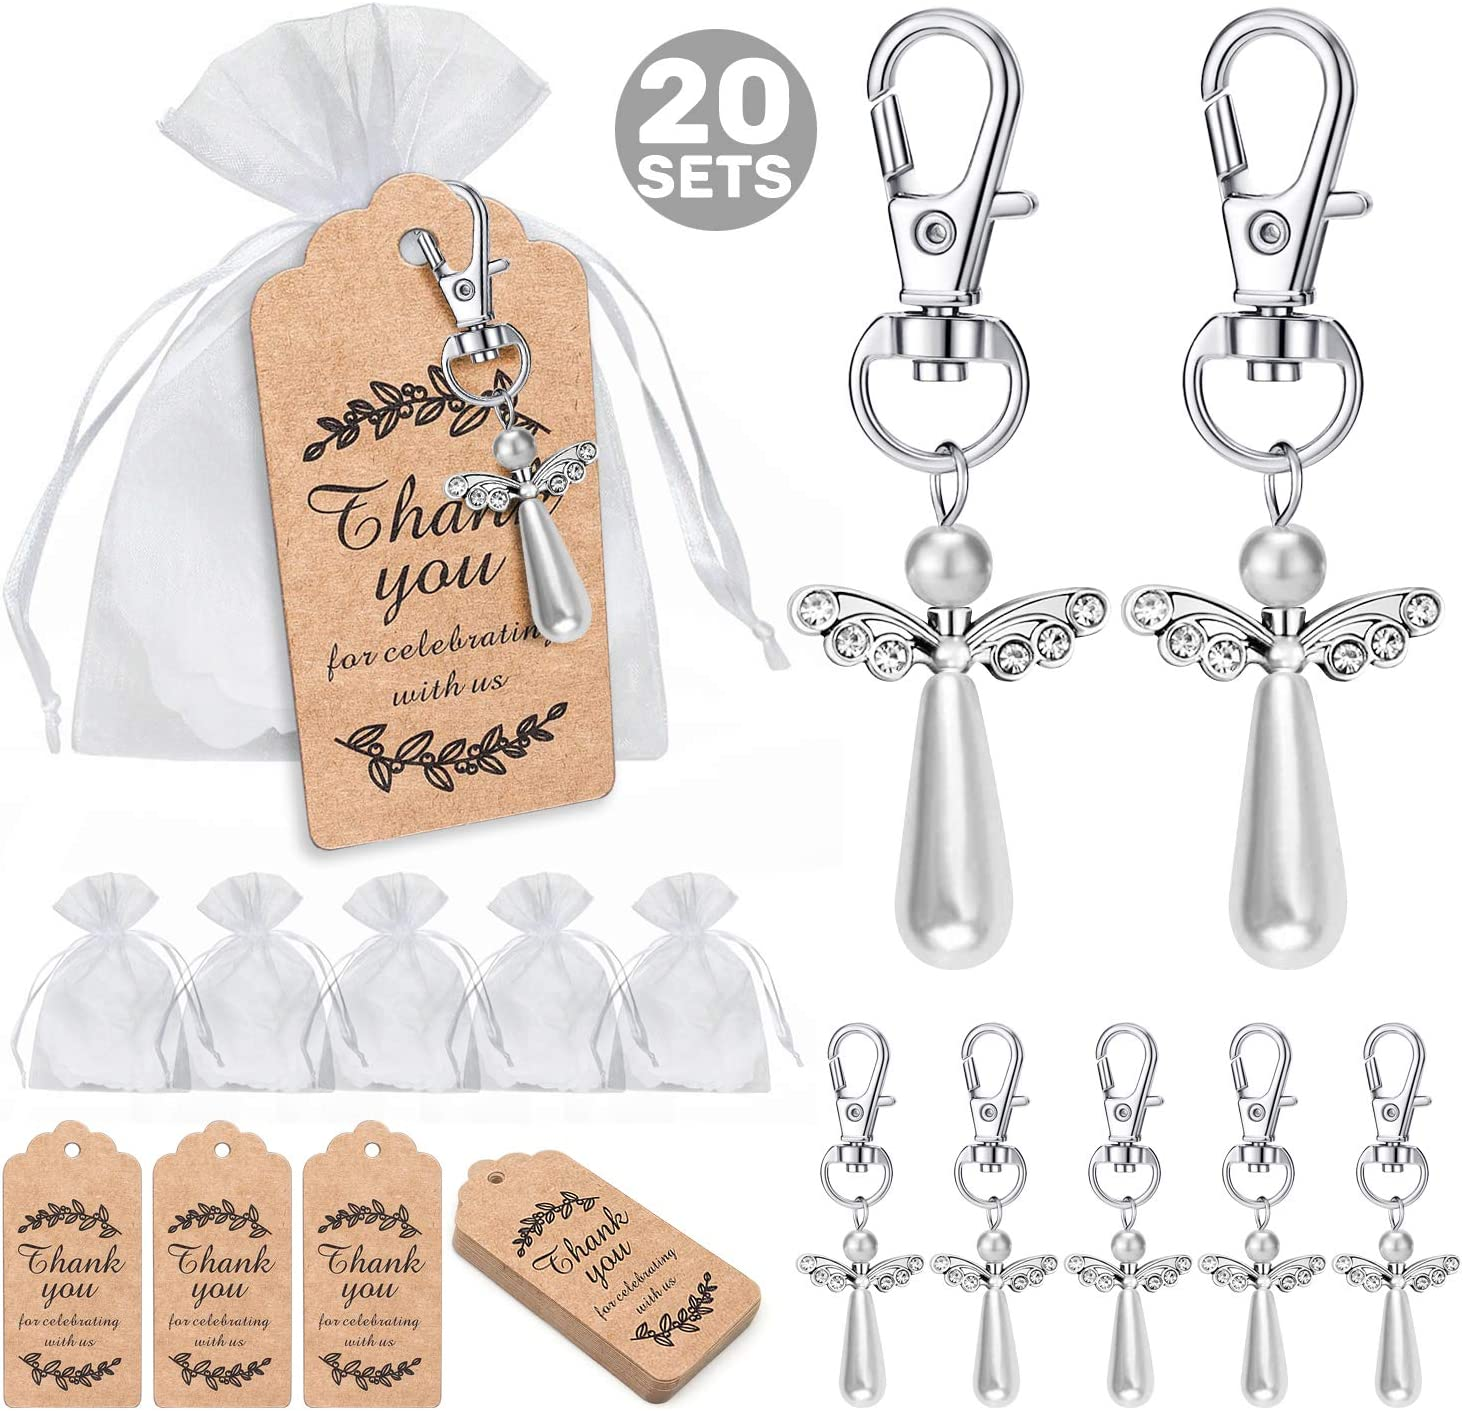 MOVINPE 20pcs Angel Favor Keychains Plus Organza Bags Plus Thank You Kraft Tags, Guest Return Favors for Baby Shower, Bridal Shower, Wedding Charm, Party Favors (Silvery&Long 20pcs)